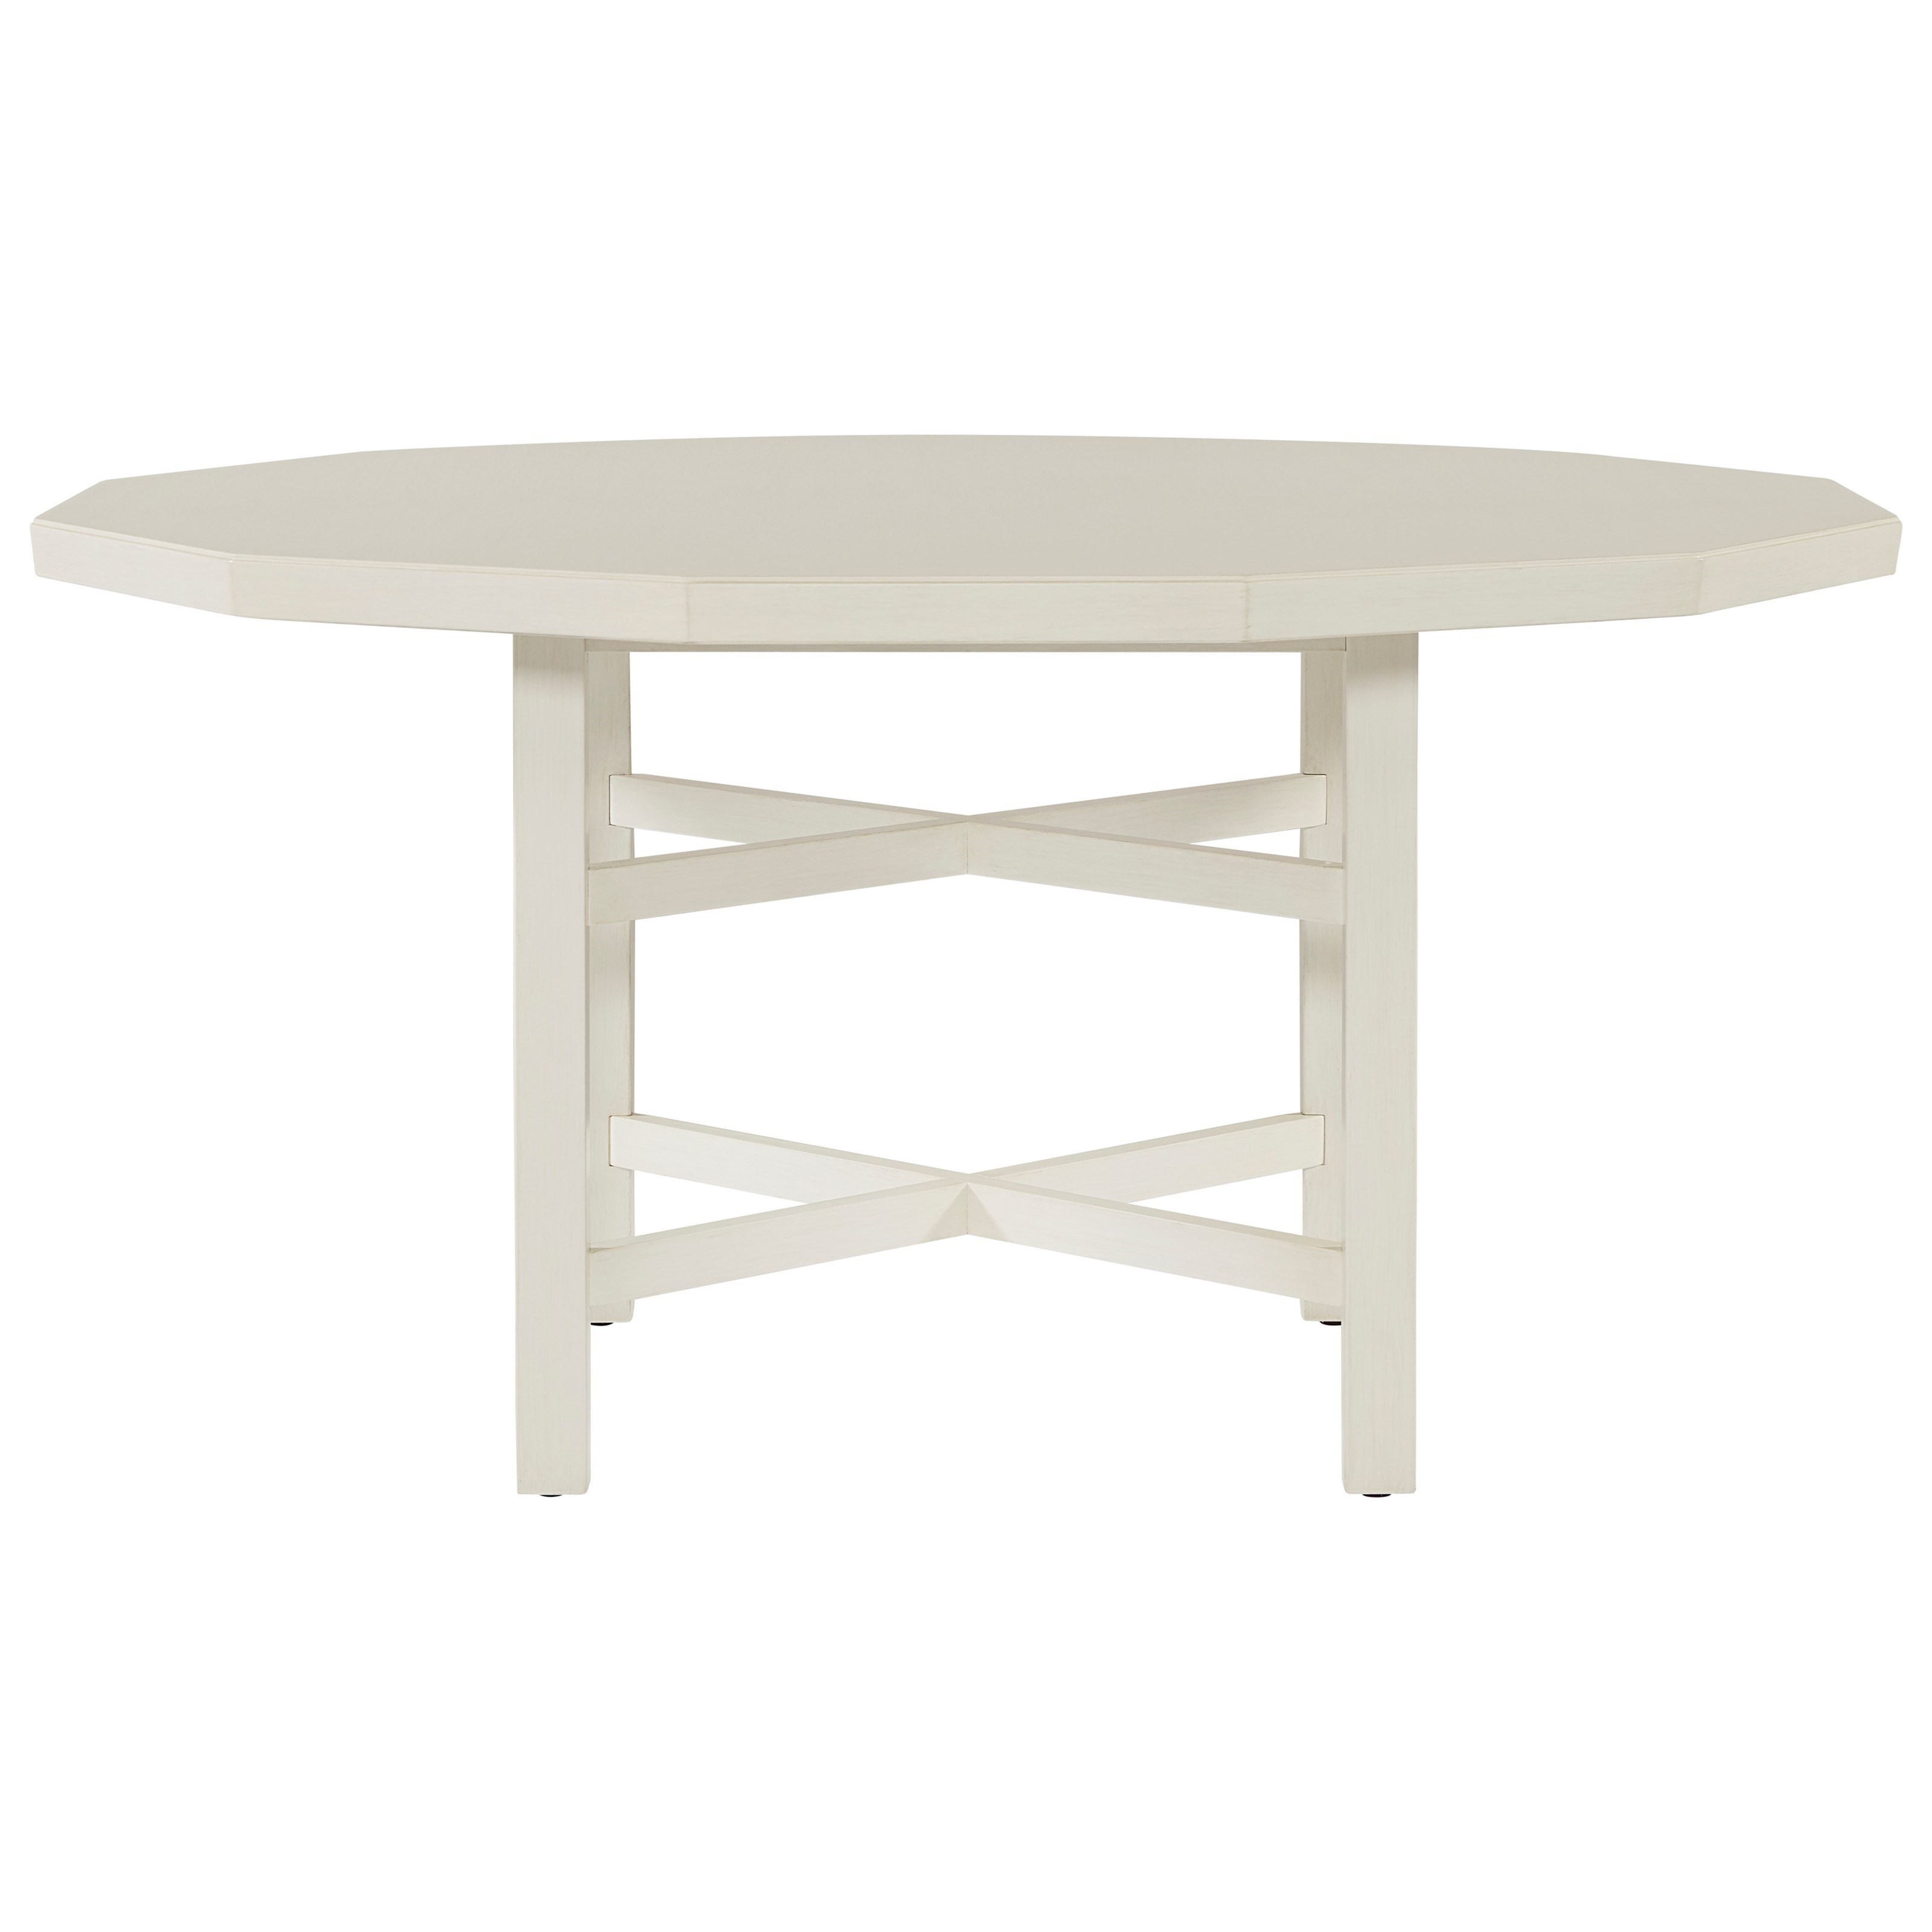 Coastal Living Home - Getaway Dining Table by Universal at Mueller Furniture